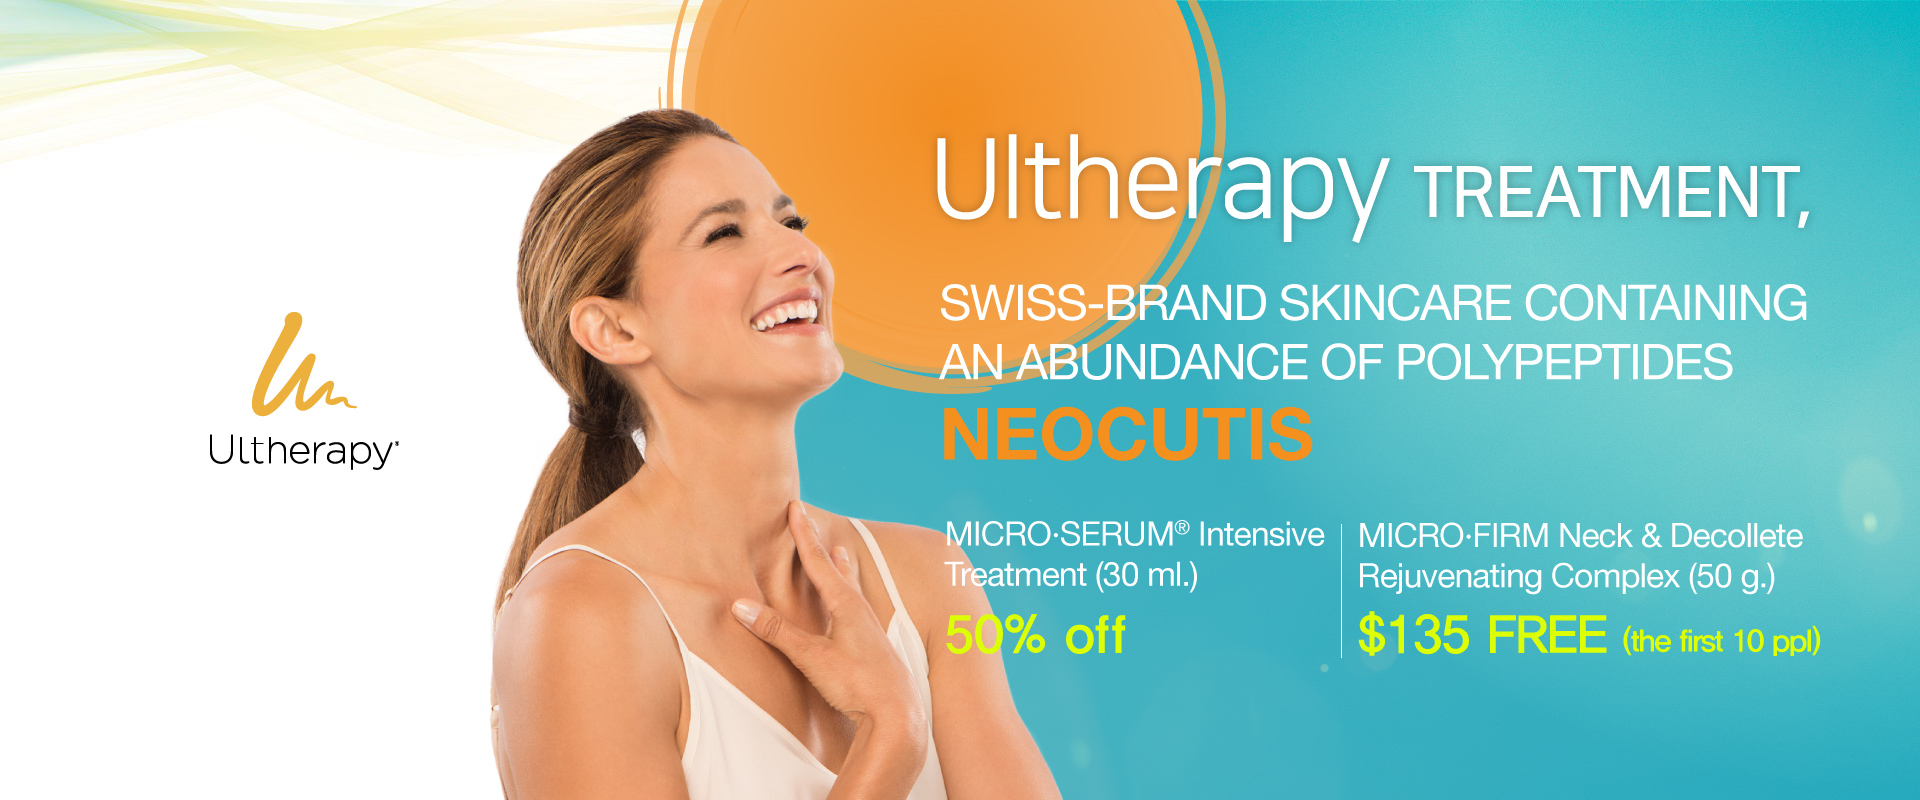 Ultherapy treatment, Swiss-brand skincare containing an abundance of polypeptides